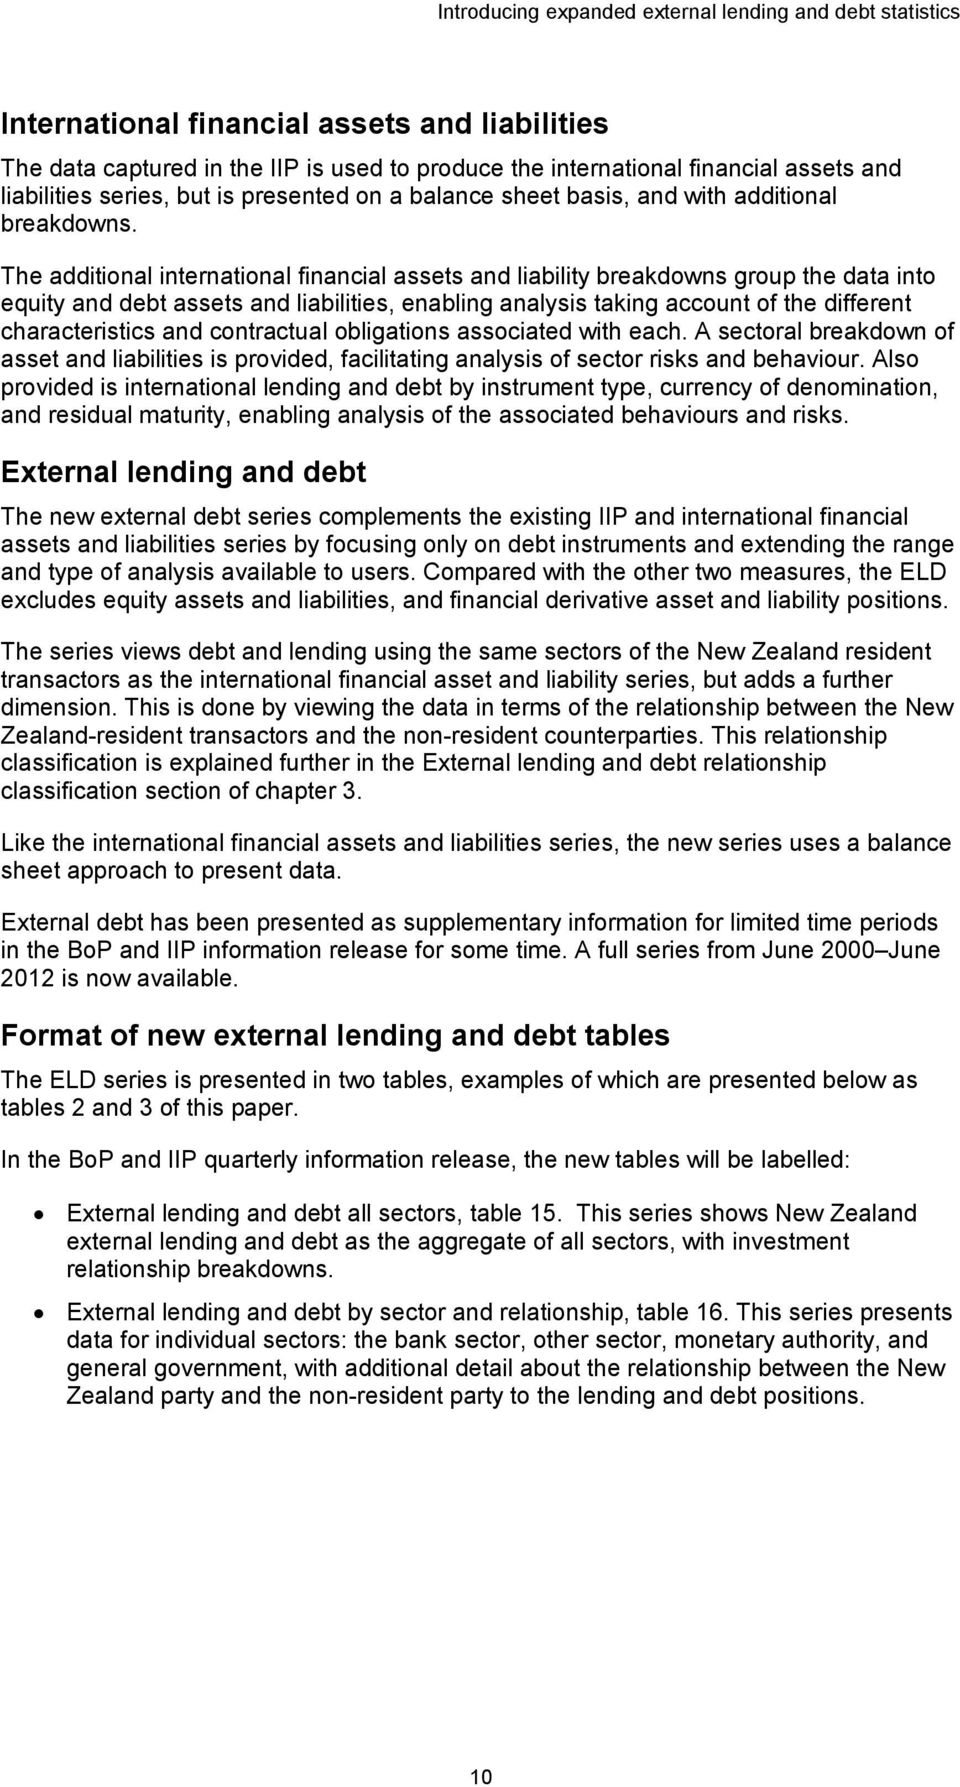 The additional international financial assets and liability breakdowns group the data into equity and debt assets and liabilities, enabling analysis taking account of the different characteristics